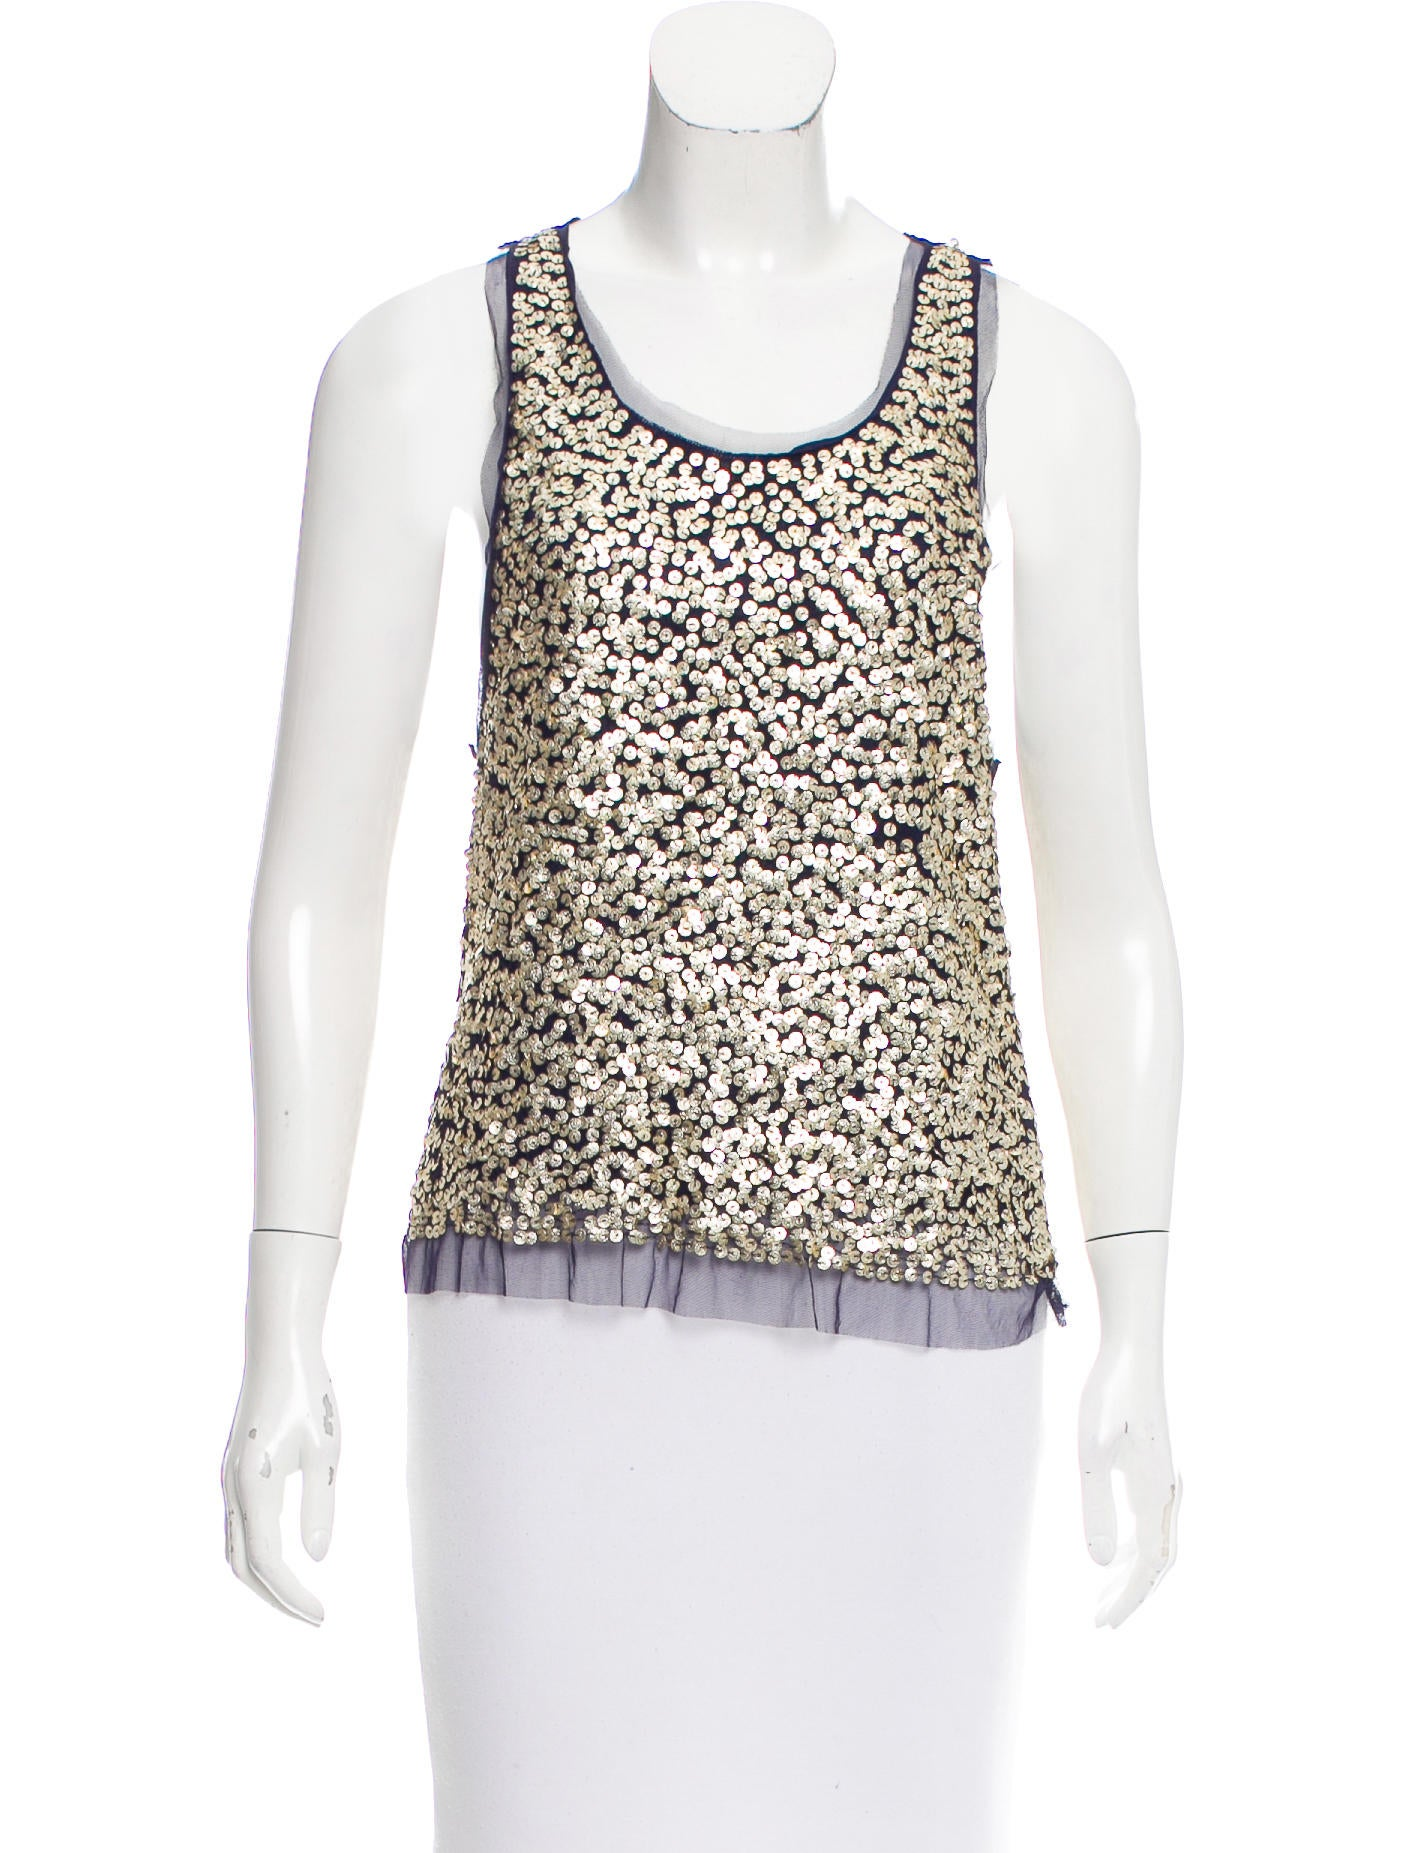 30fd73325d9a9 Gryphon Sequin Sleeveless Top - Clothing - WGR21971